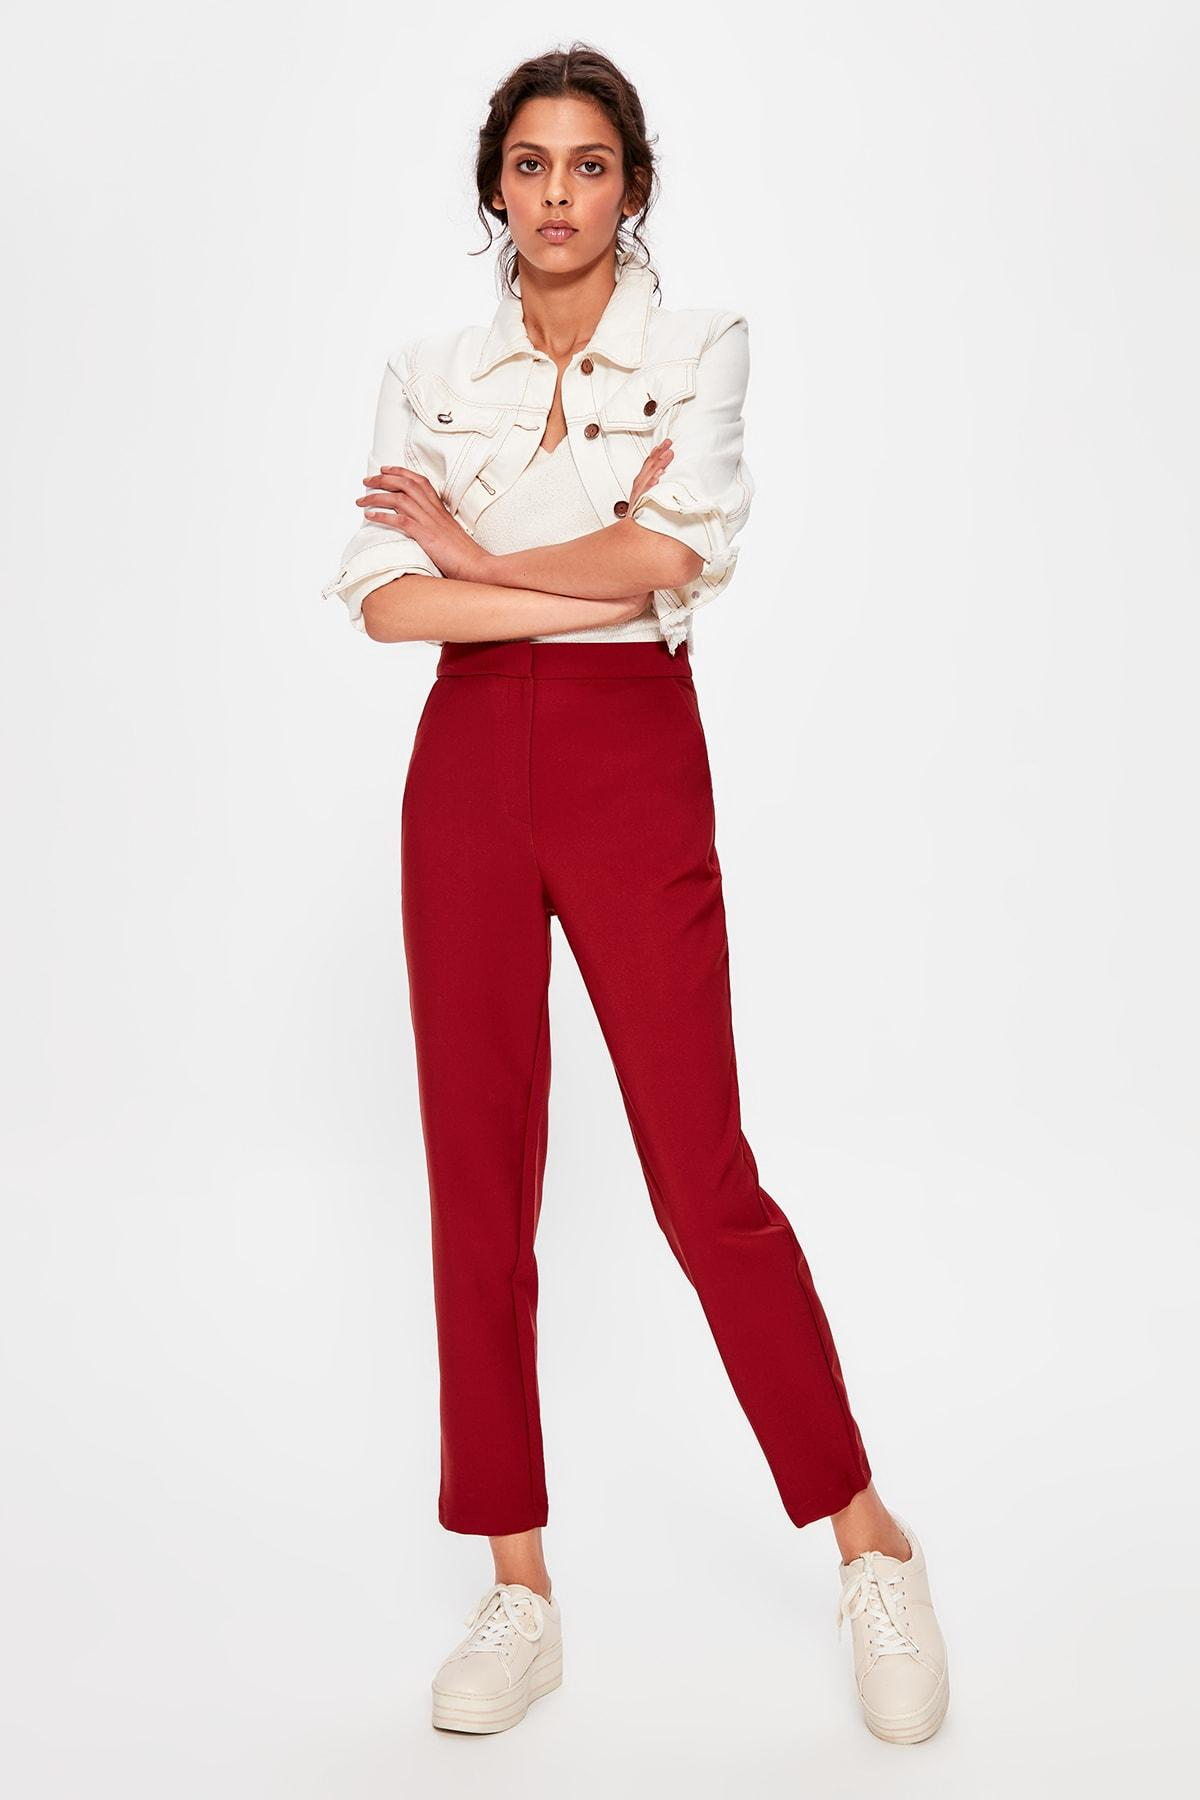 Trendyol Kahverengi Narrow Bell-Bottomed Pants TWOAW20PL0060